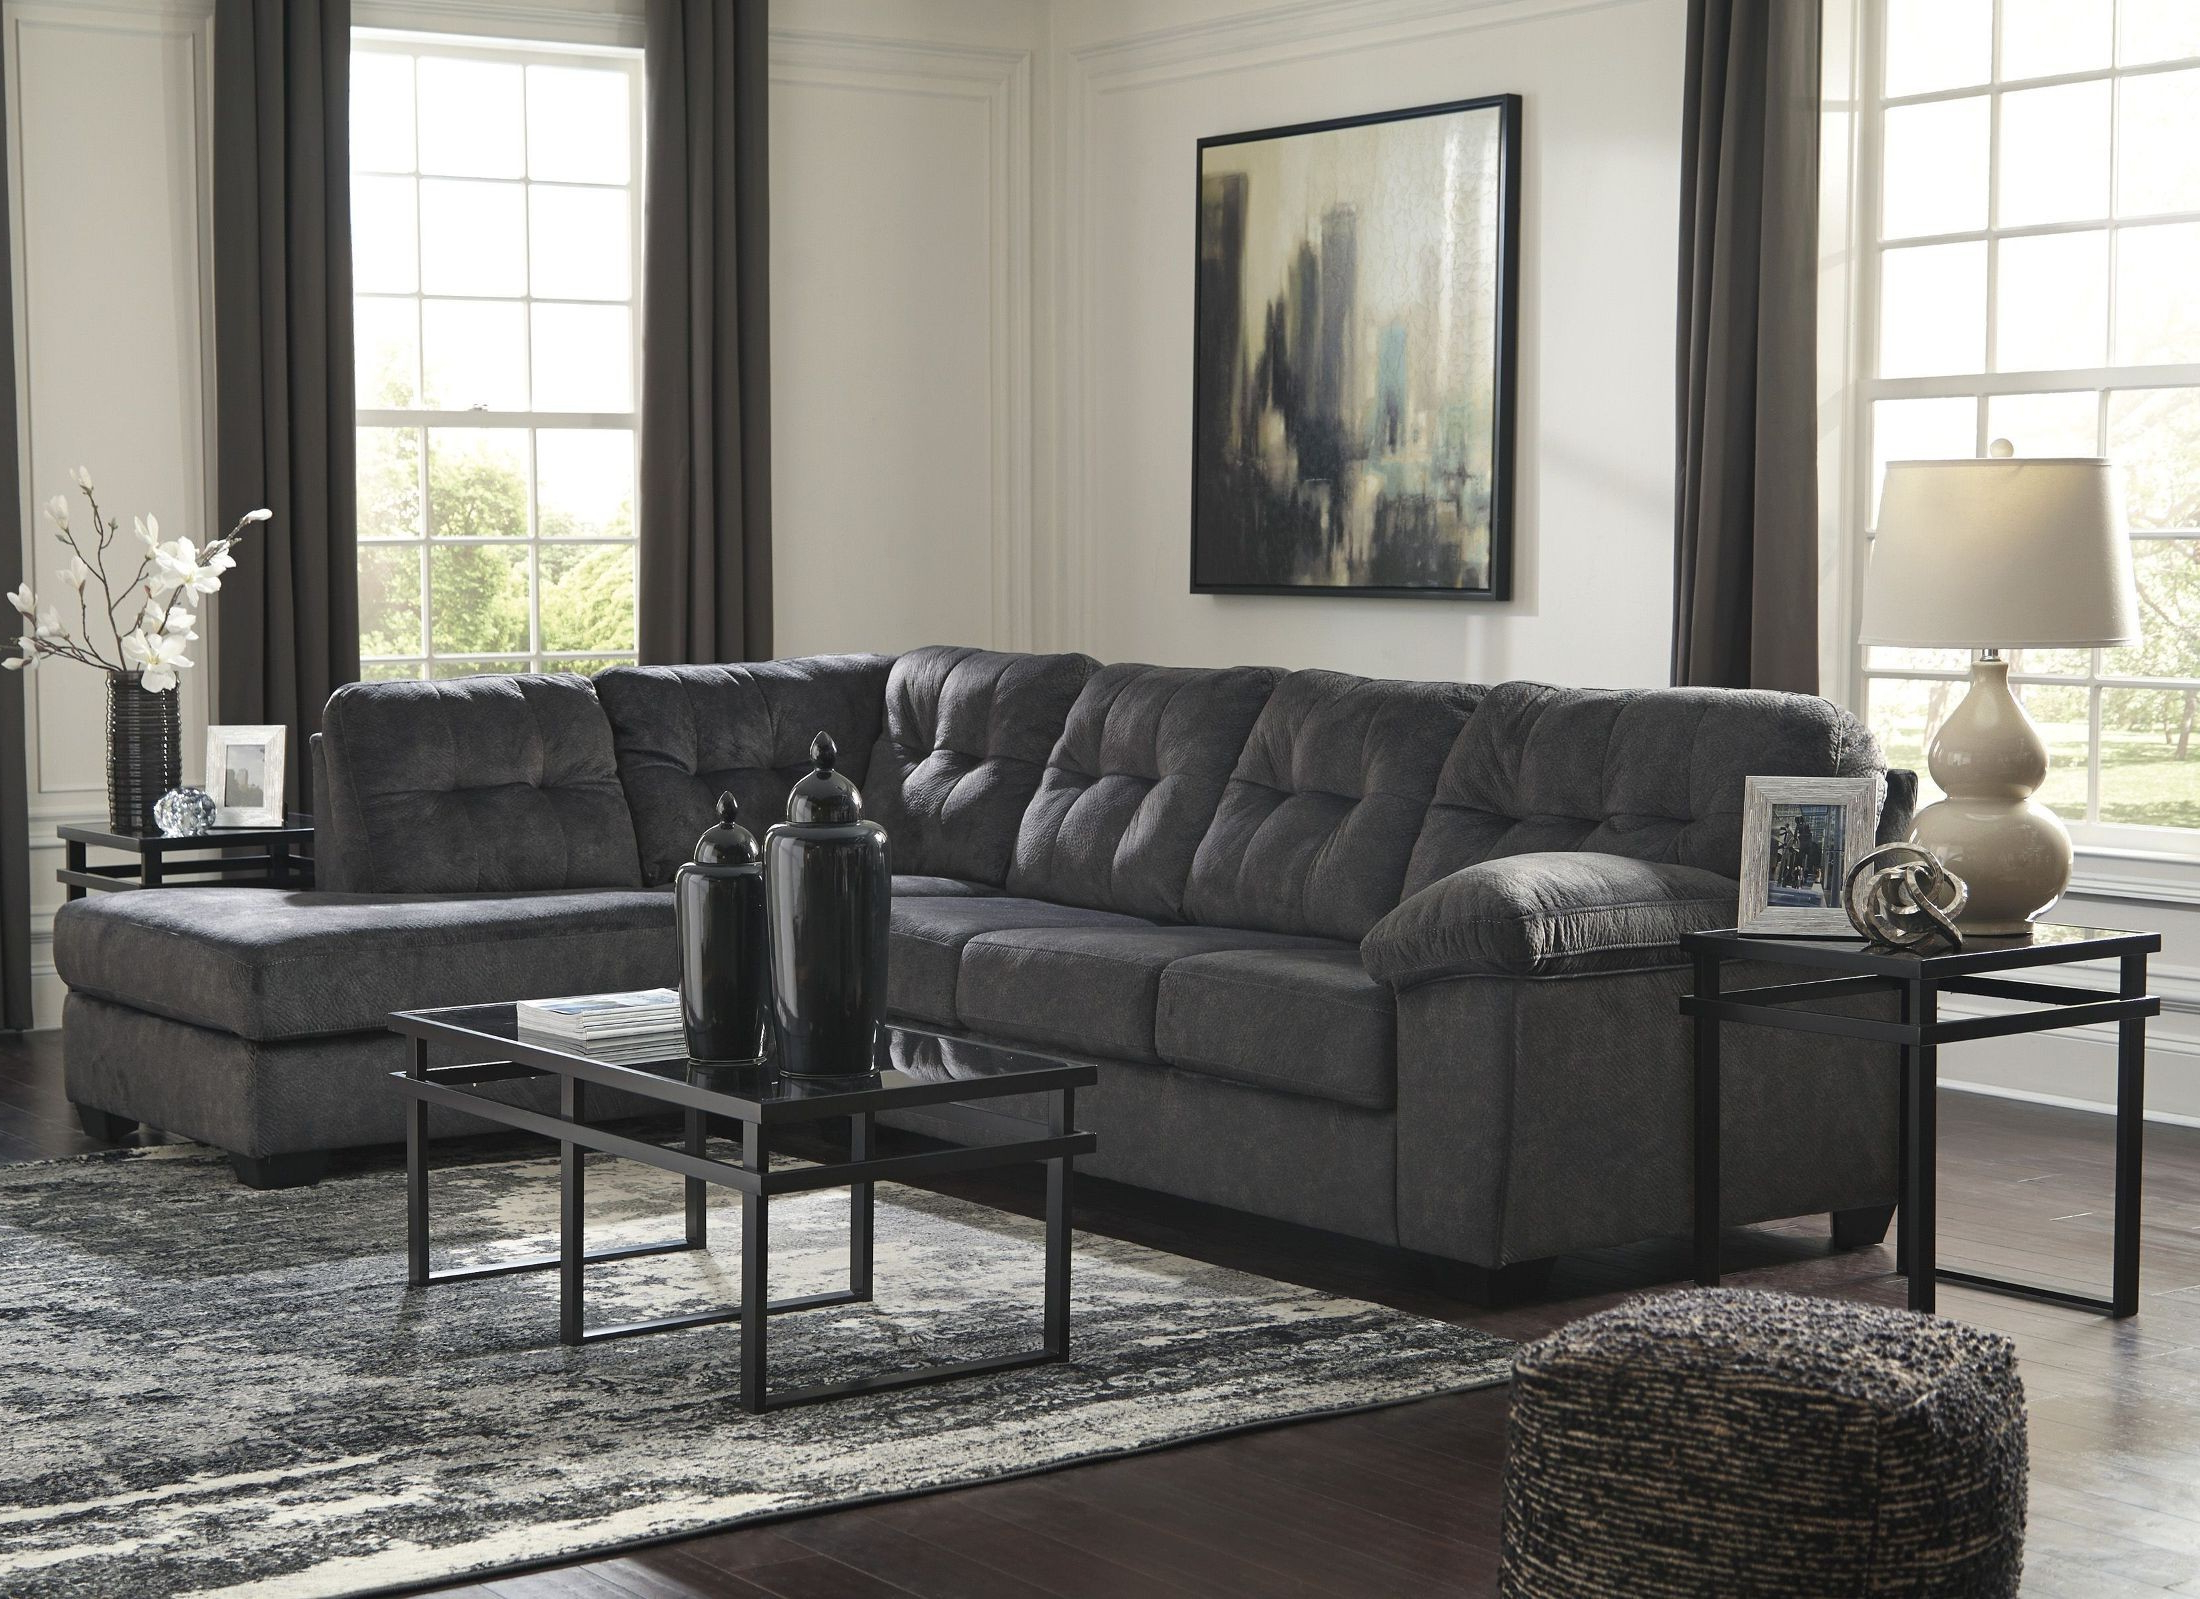 Kerri 2 Piece Sectionals With Laf Chaise Within Popular Signature Designashley Accrington Granite Raf Sectional (Gallery 18 of 20)